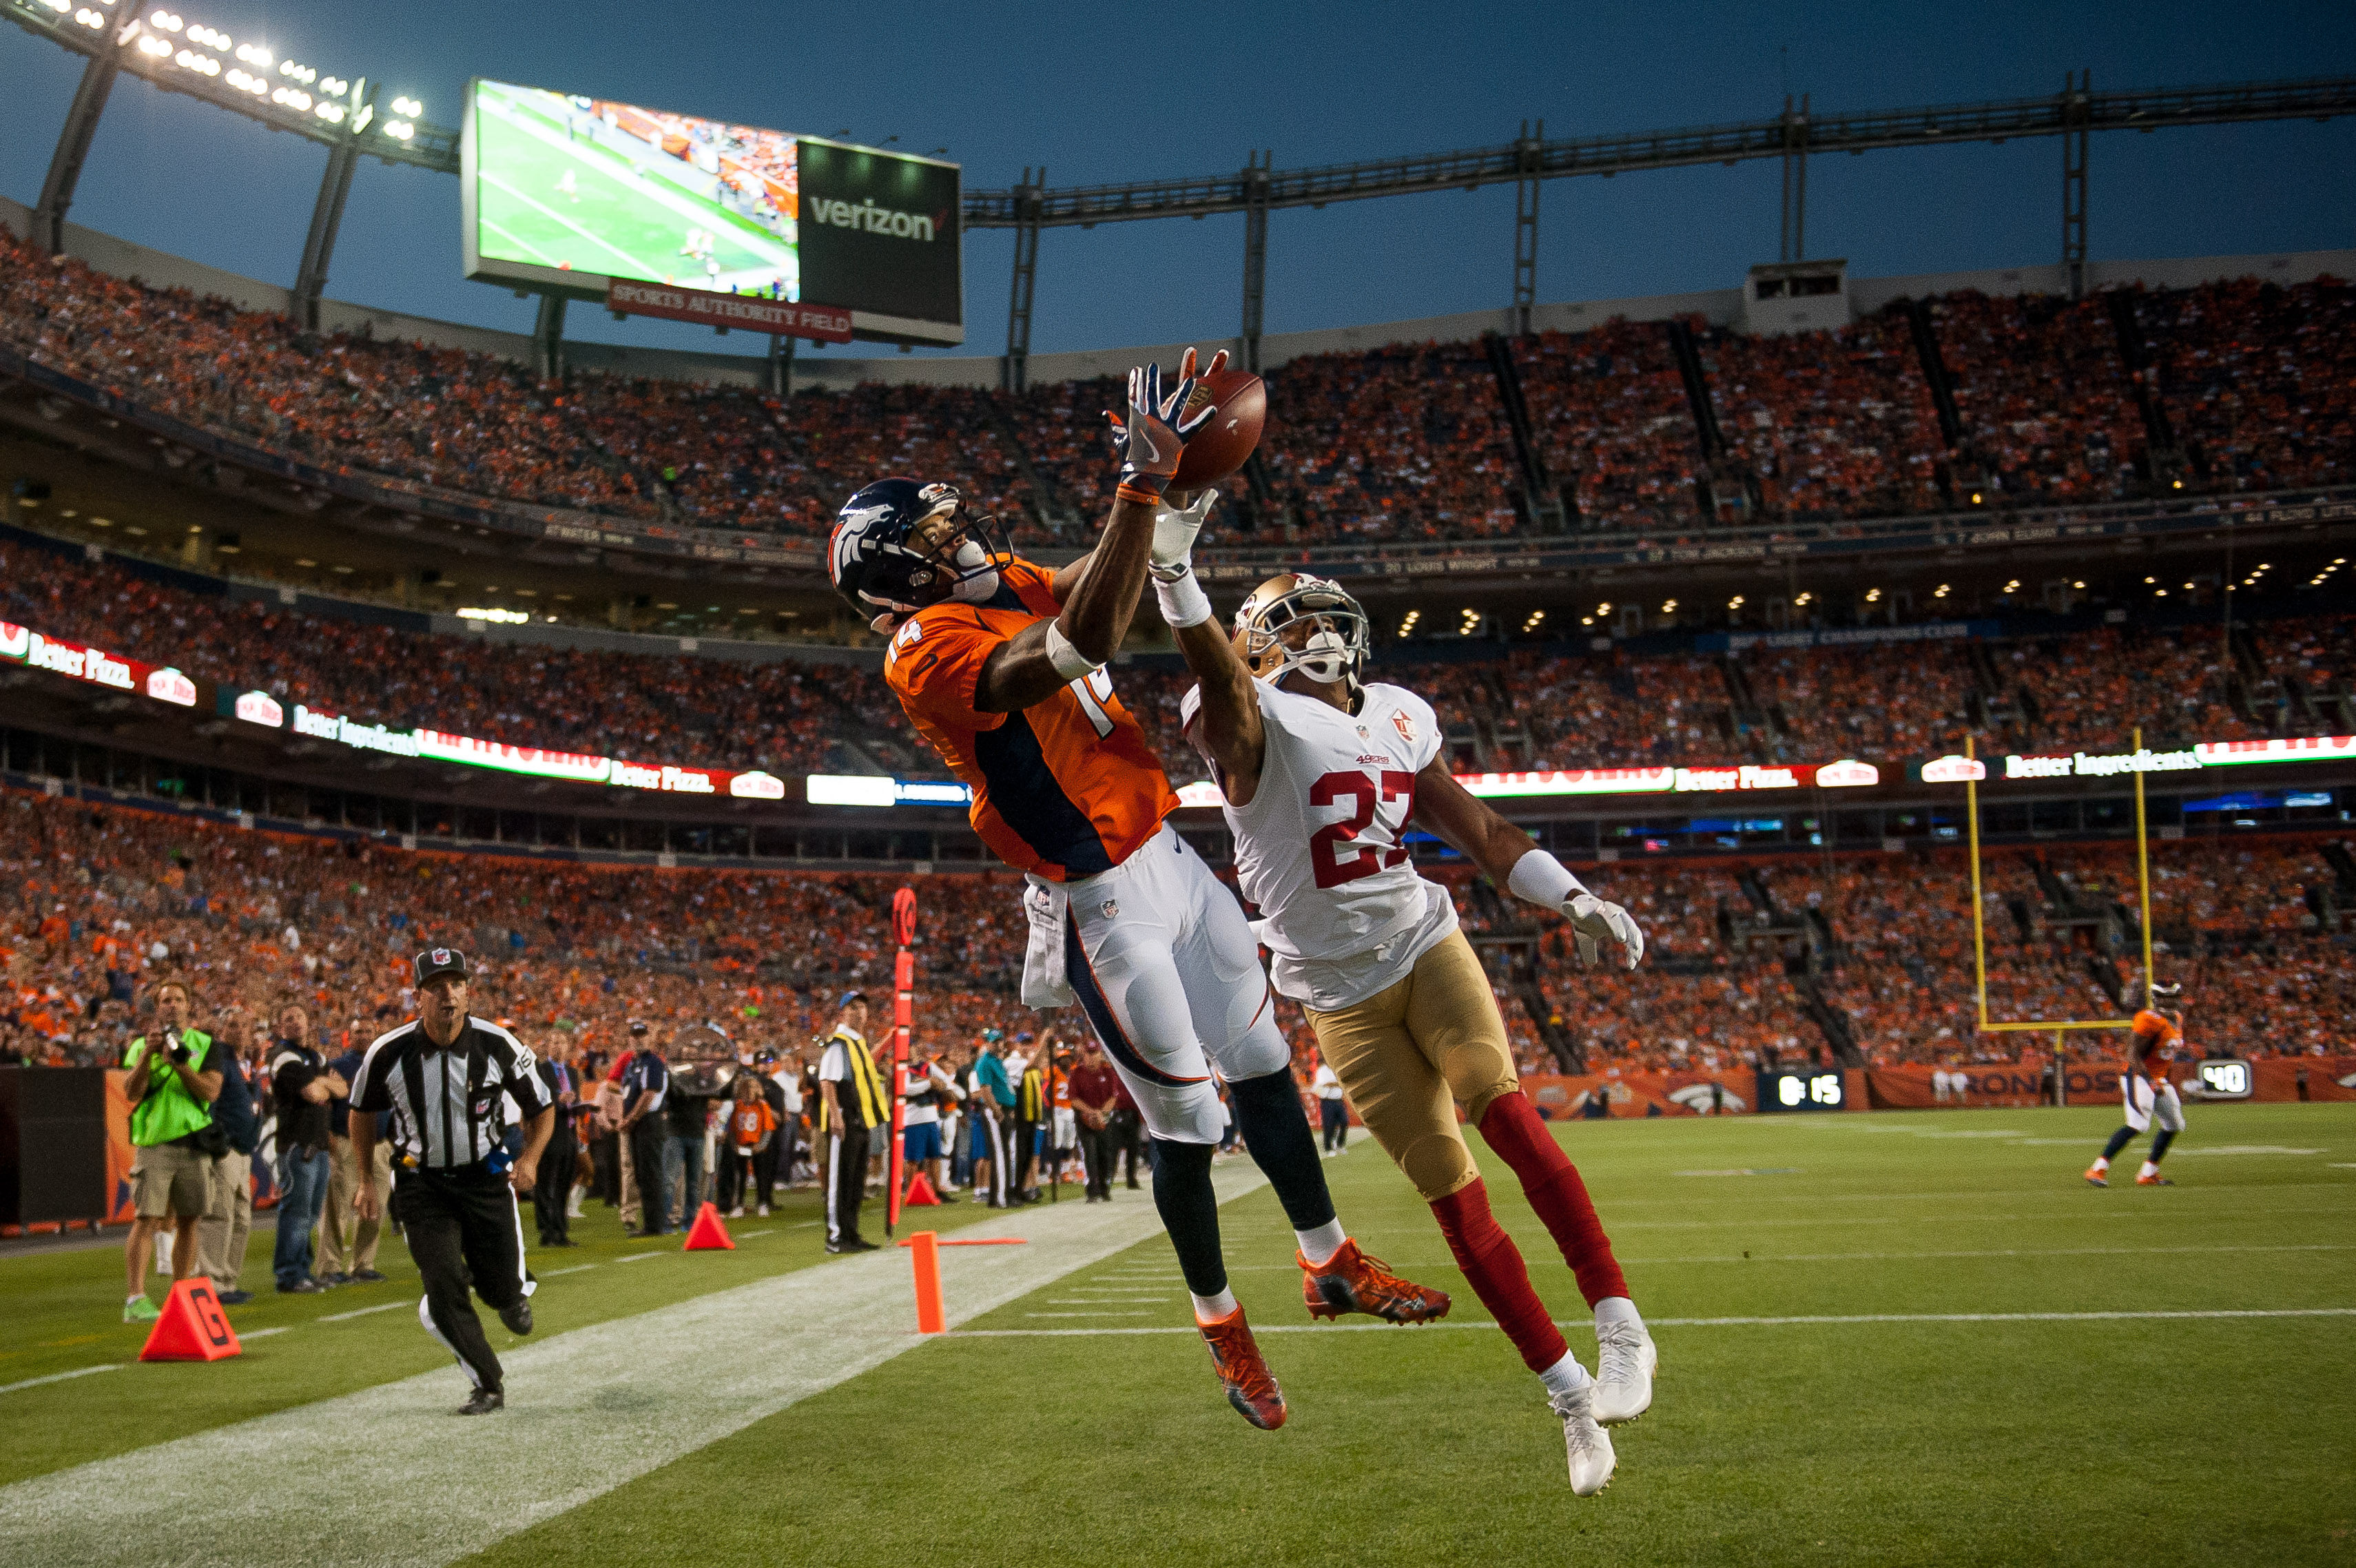 DENVER, CO - AUGUST 20: Wide receiver Cody Latimer of the Denver Broncos goes up for a pass in the end zone under coverage by cornerback Keith Reaser of the San Francisco 49ers in the second quarter of a preseason NFL game at Sports Authority Field at Mile High on August 20, 2016 in Denver, Colorado. (Photo by Dustin Bradford/Getty Images)